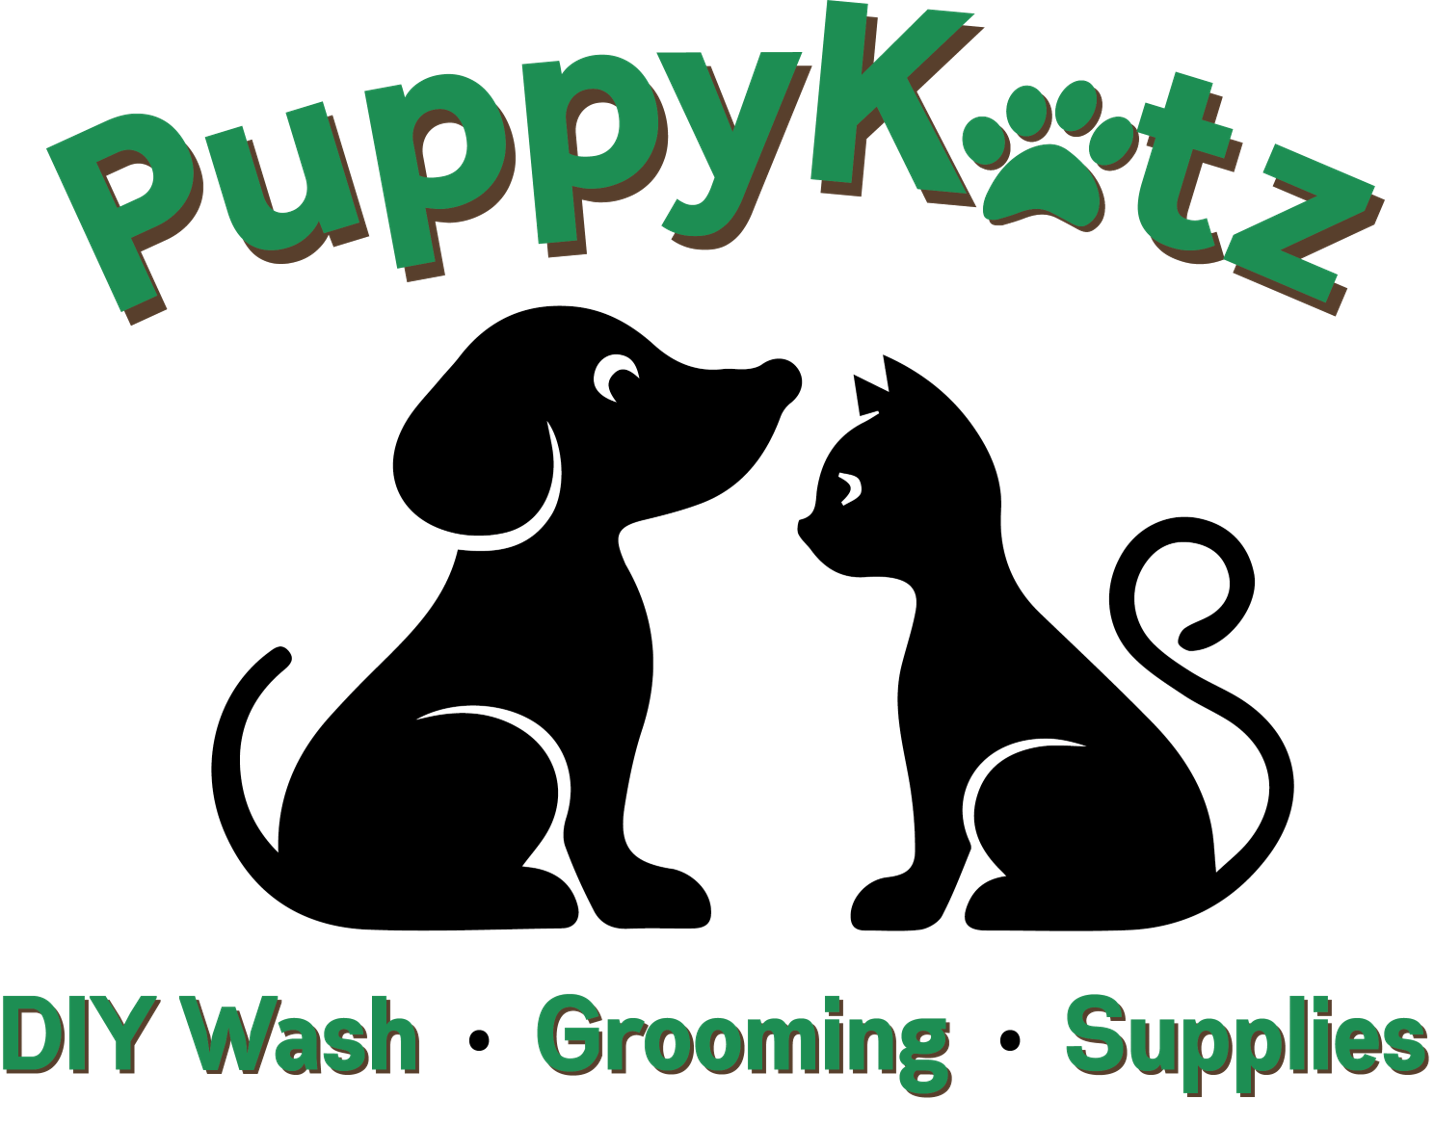 Pet Grooming | Pet Supplies | DIY Bath - PuppyKatz